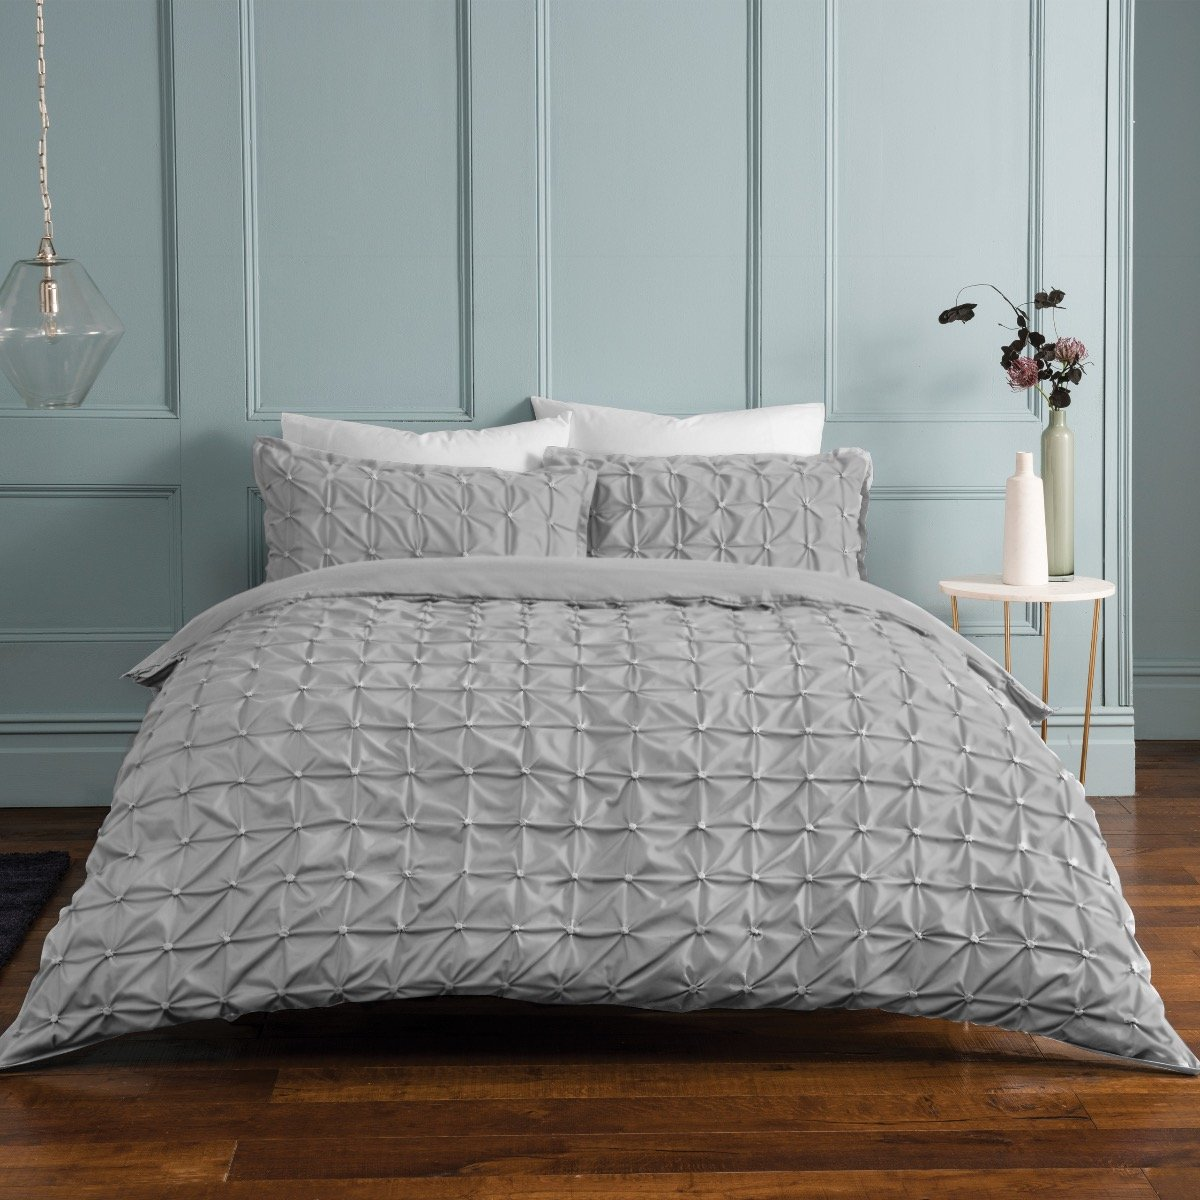 Ruched Pleat Light Grey Bedding - Reversible Duvet Cover and Pillowcase Set